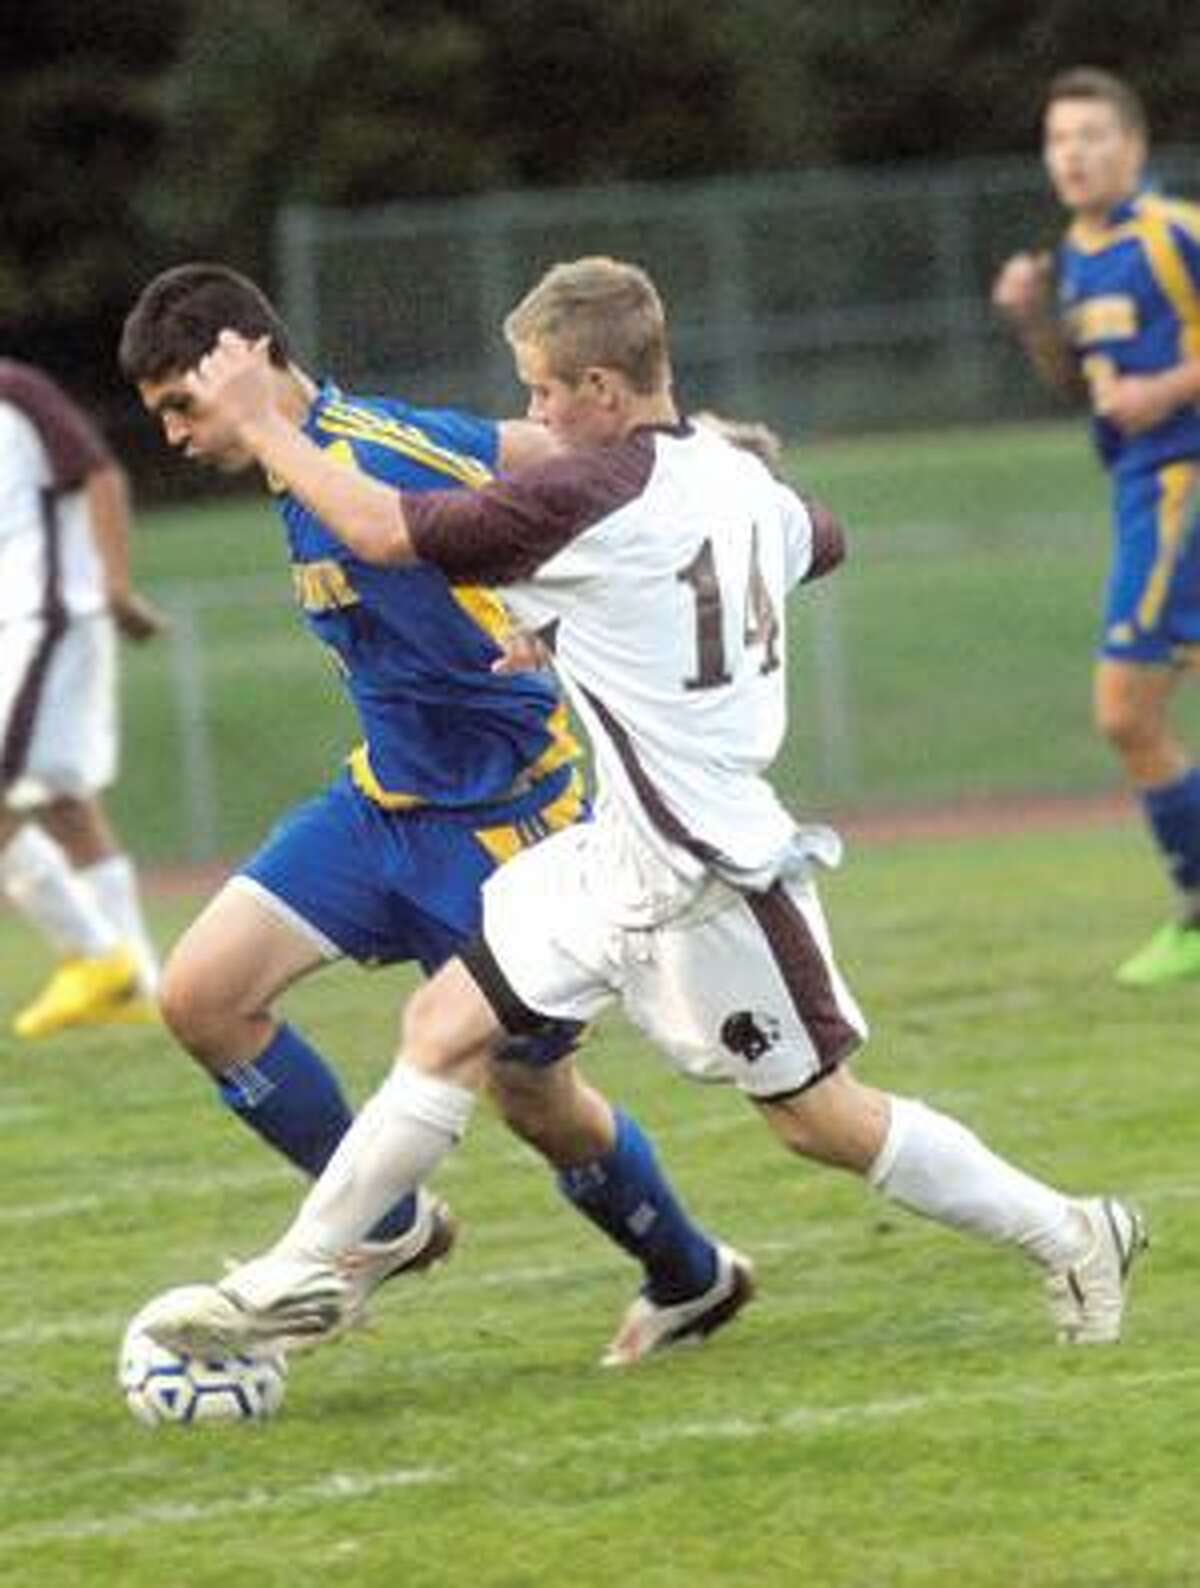 MIC NICOSIA/Register Citizen Torrington's Matt Rosengrant, right, and Seymour's Louis Krohelski fight for possession during Friday's game. Purchase a glossy print of this photo and more at www.registercitizen.com.